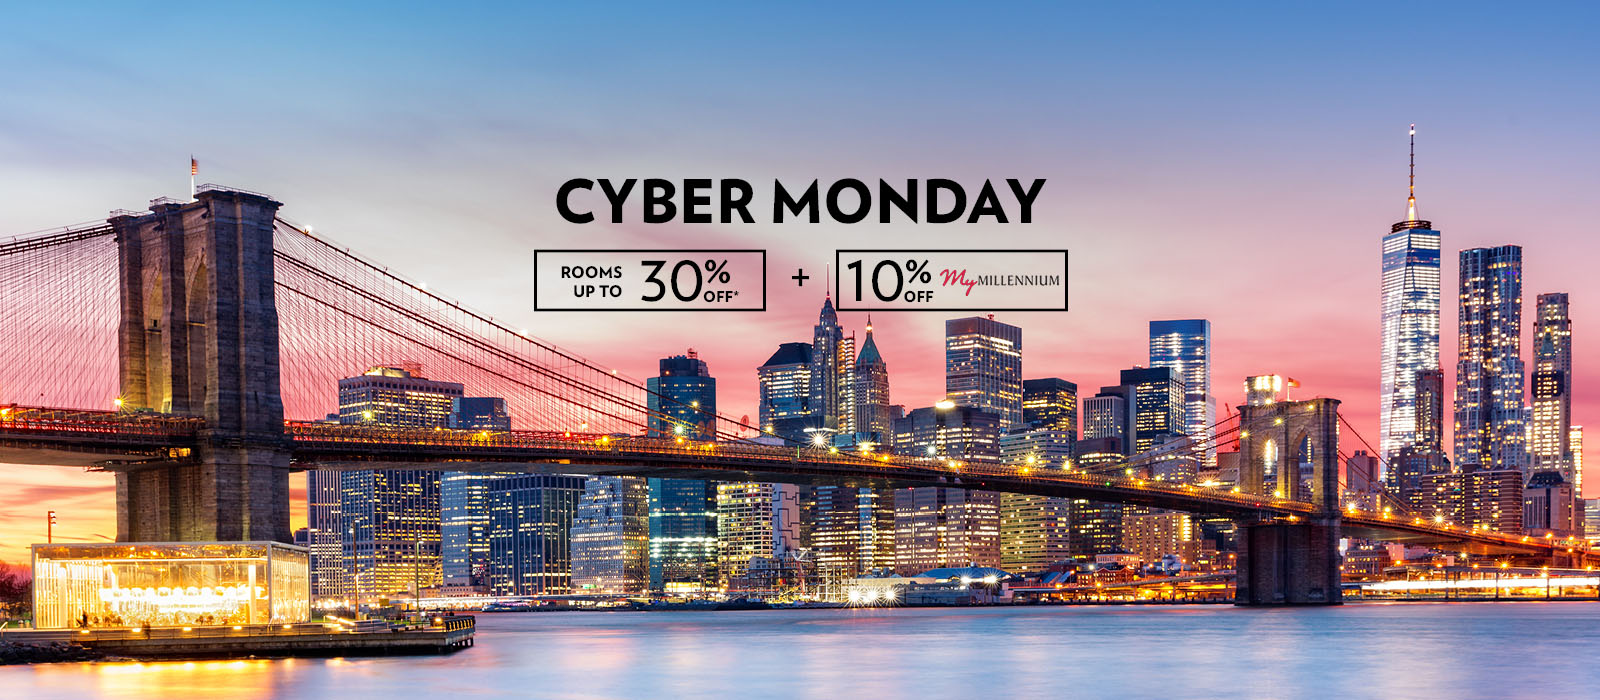 Cyber Monday 2020 Offer Page Image NYC